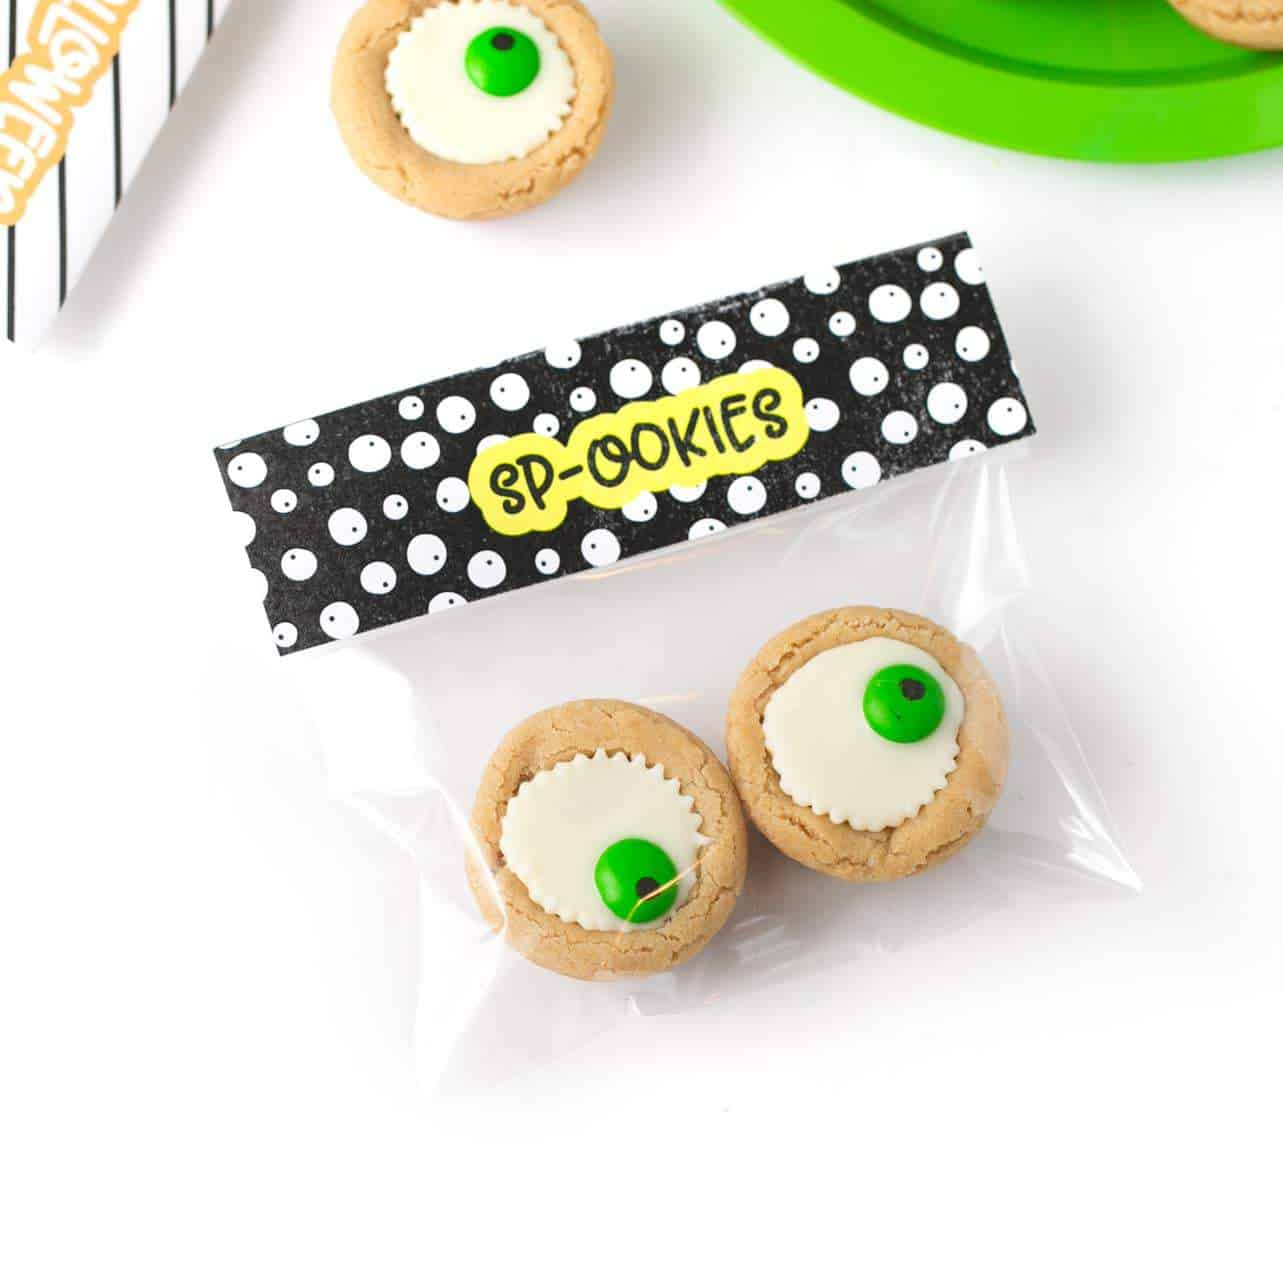 Easy Halloween Eyeball Cookies the kids can help with! After baking, simply press a miniature white peanut butter cup and M&M into the top of each one for a spooky (but cute!) halloween cookie idea. #Halloween #Cookies #EyeballCookies | www.DesignEatRepeat.com